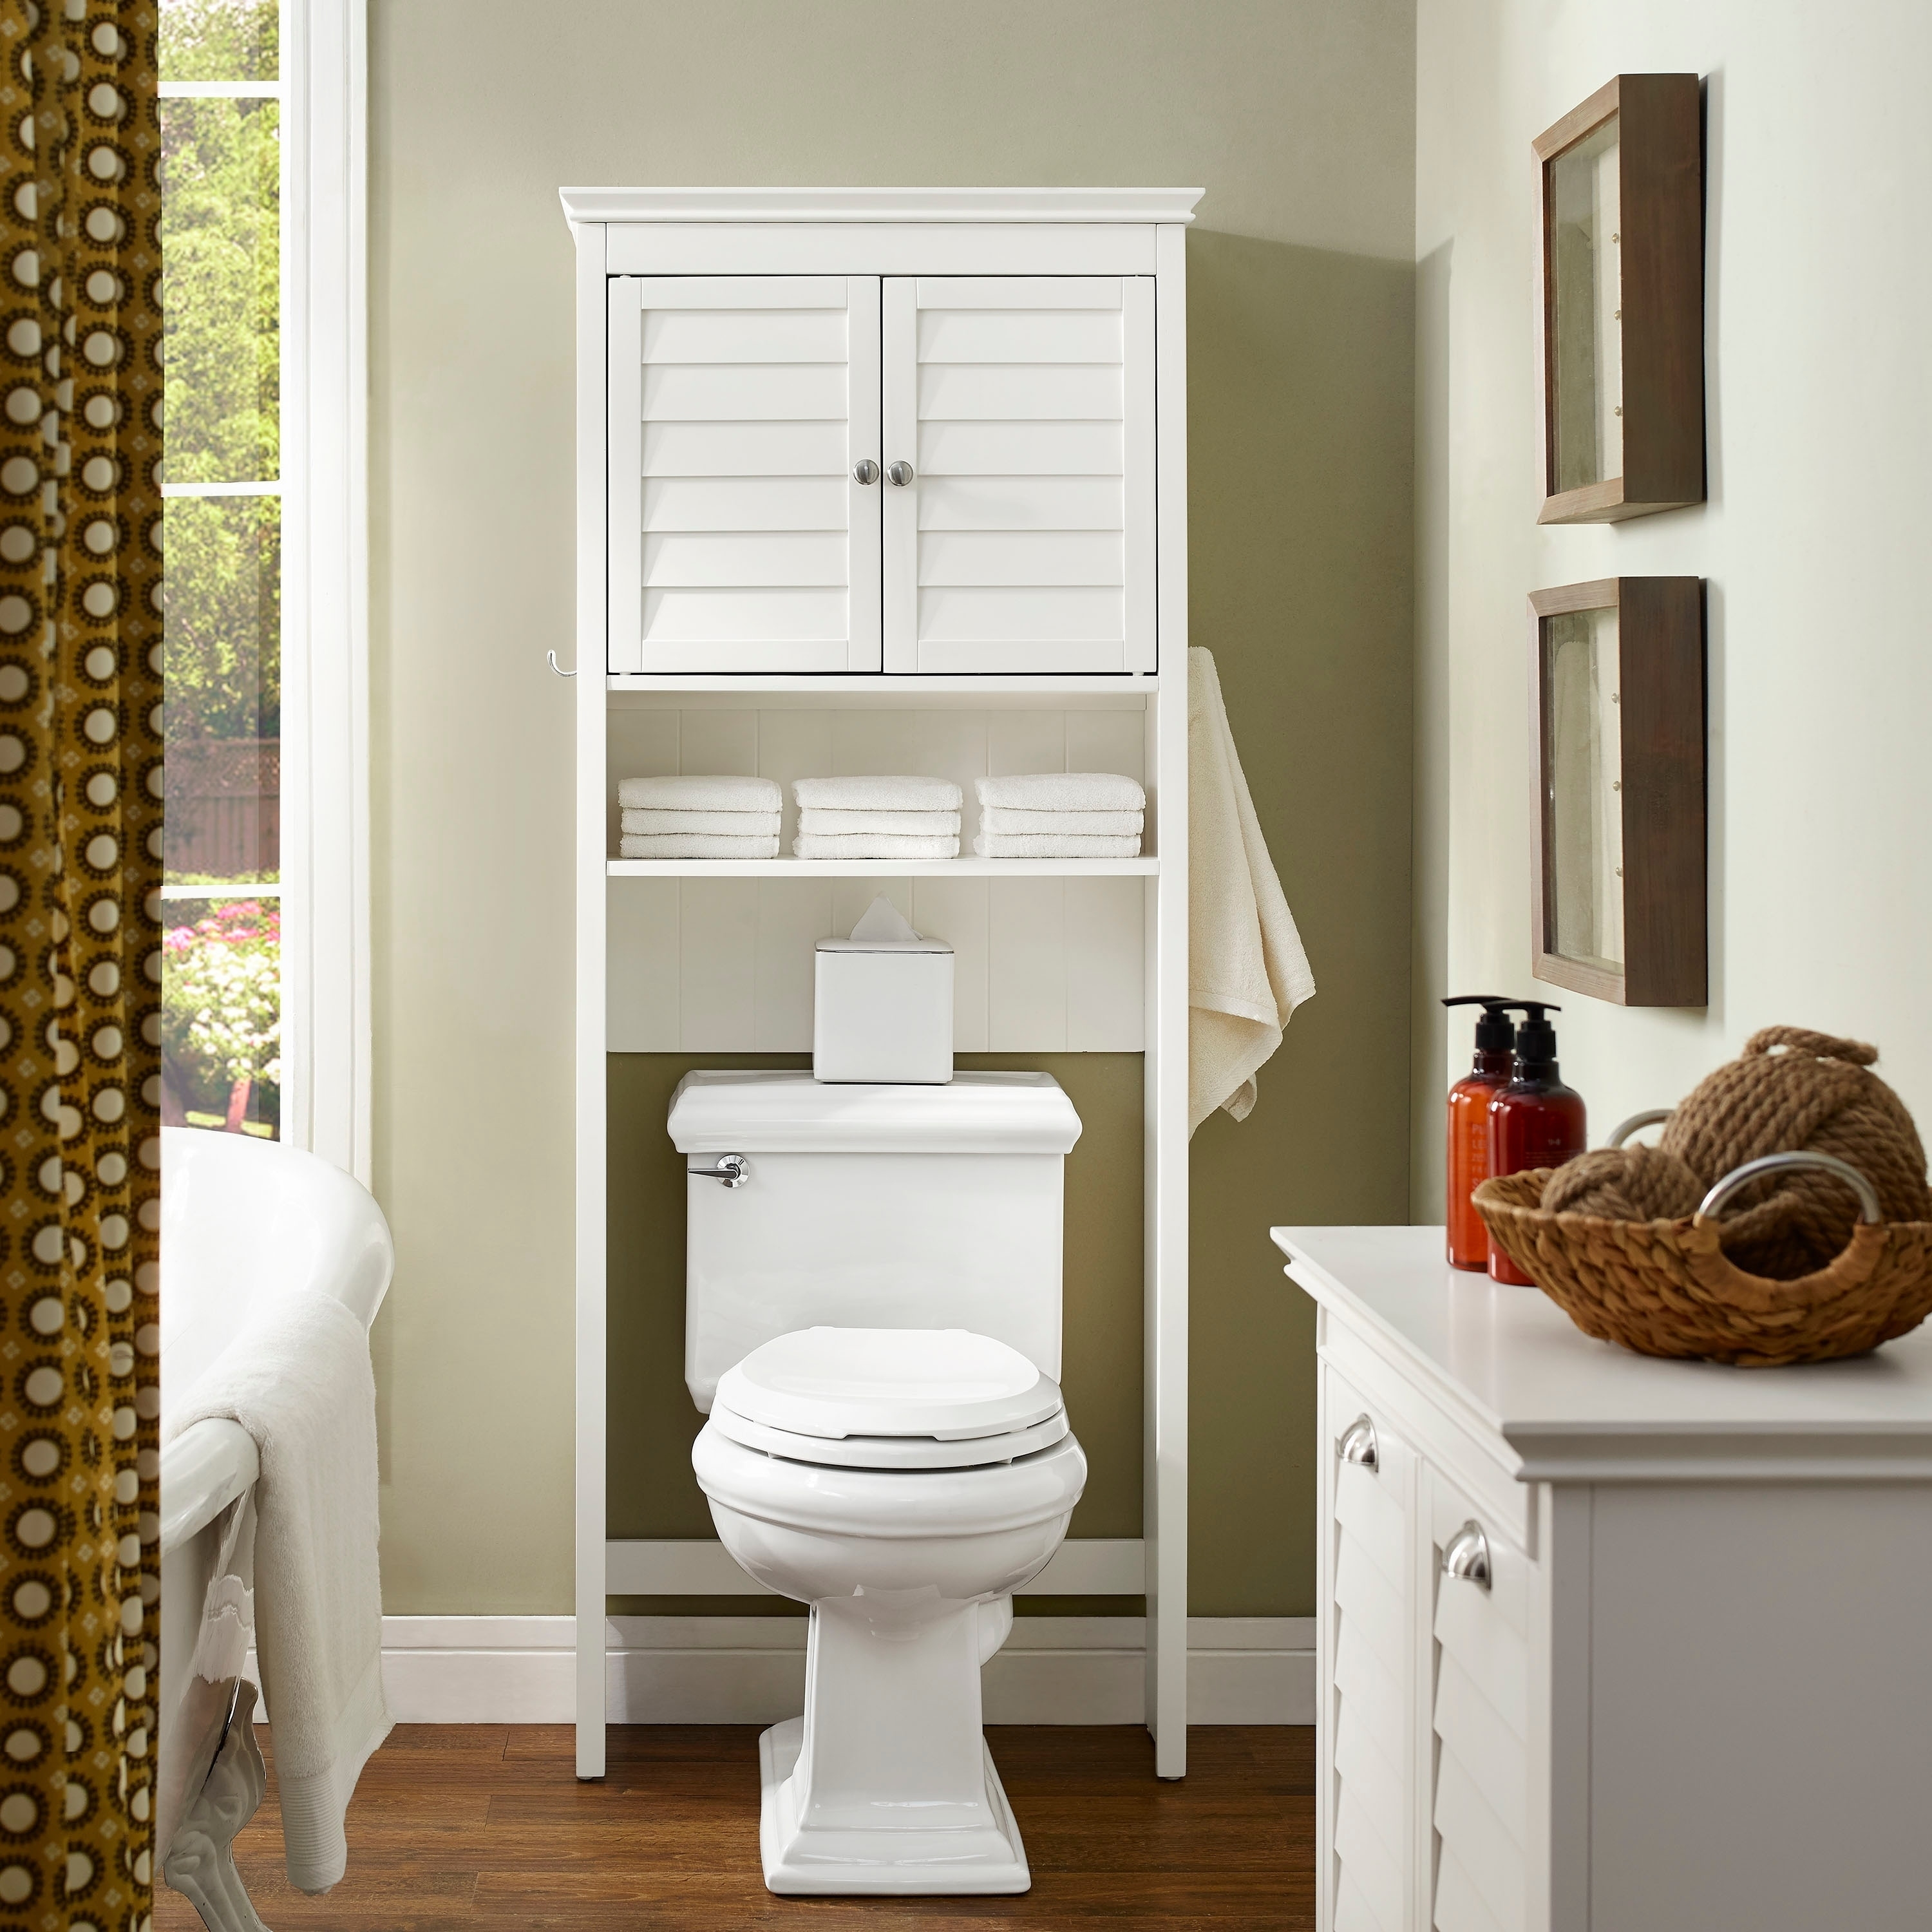 Buy Wood Bathroom Cabinets & Storage Online at Overstock.com | Our ...